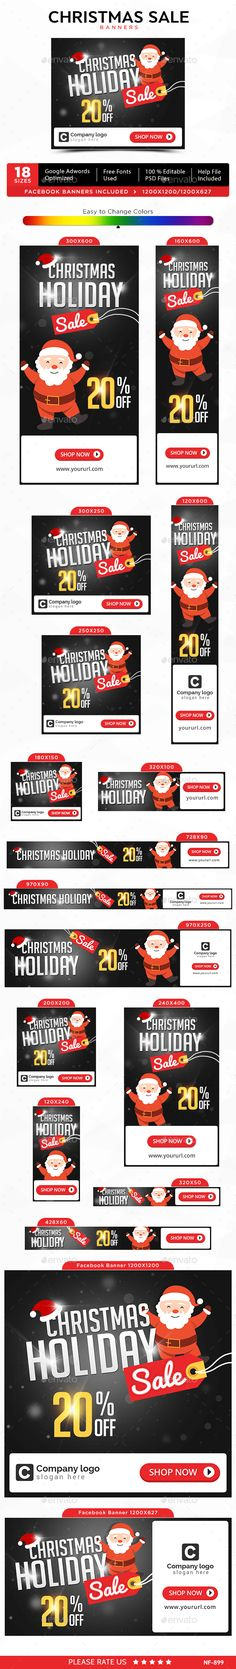 Christmas Sale Web Banners Template PSD #design #ads #xmas Download: http://graphicriver.net/item/christmas-sale-banners/13963859?ref=ksioks